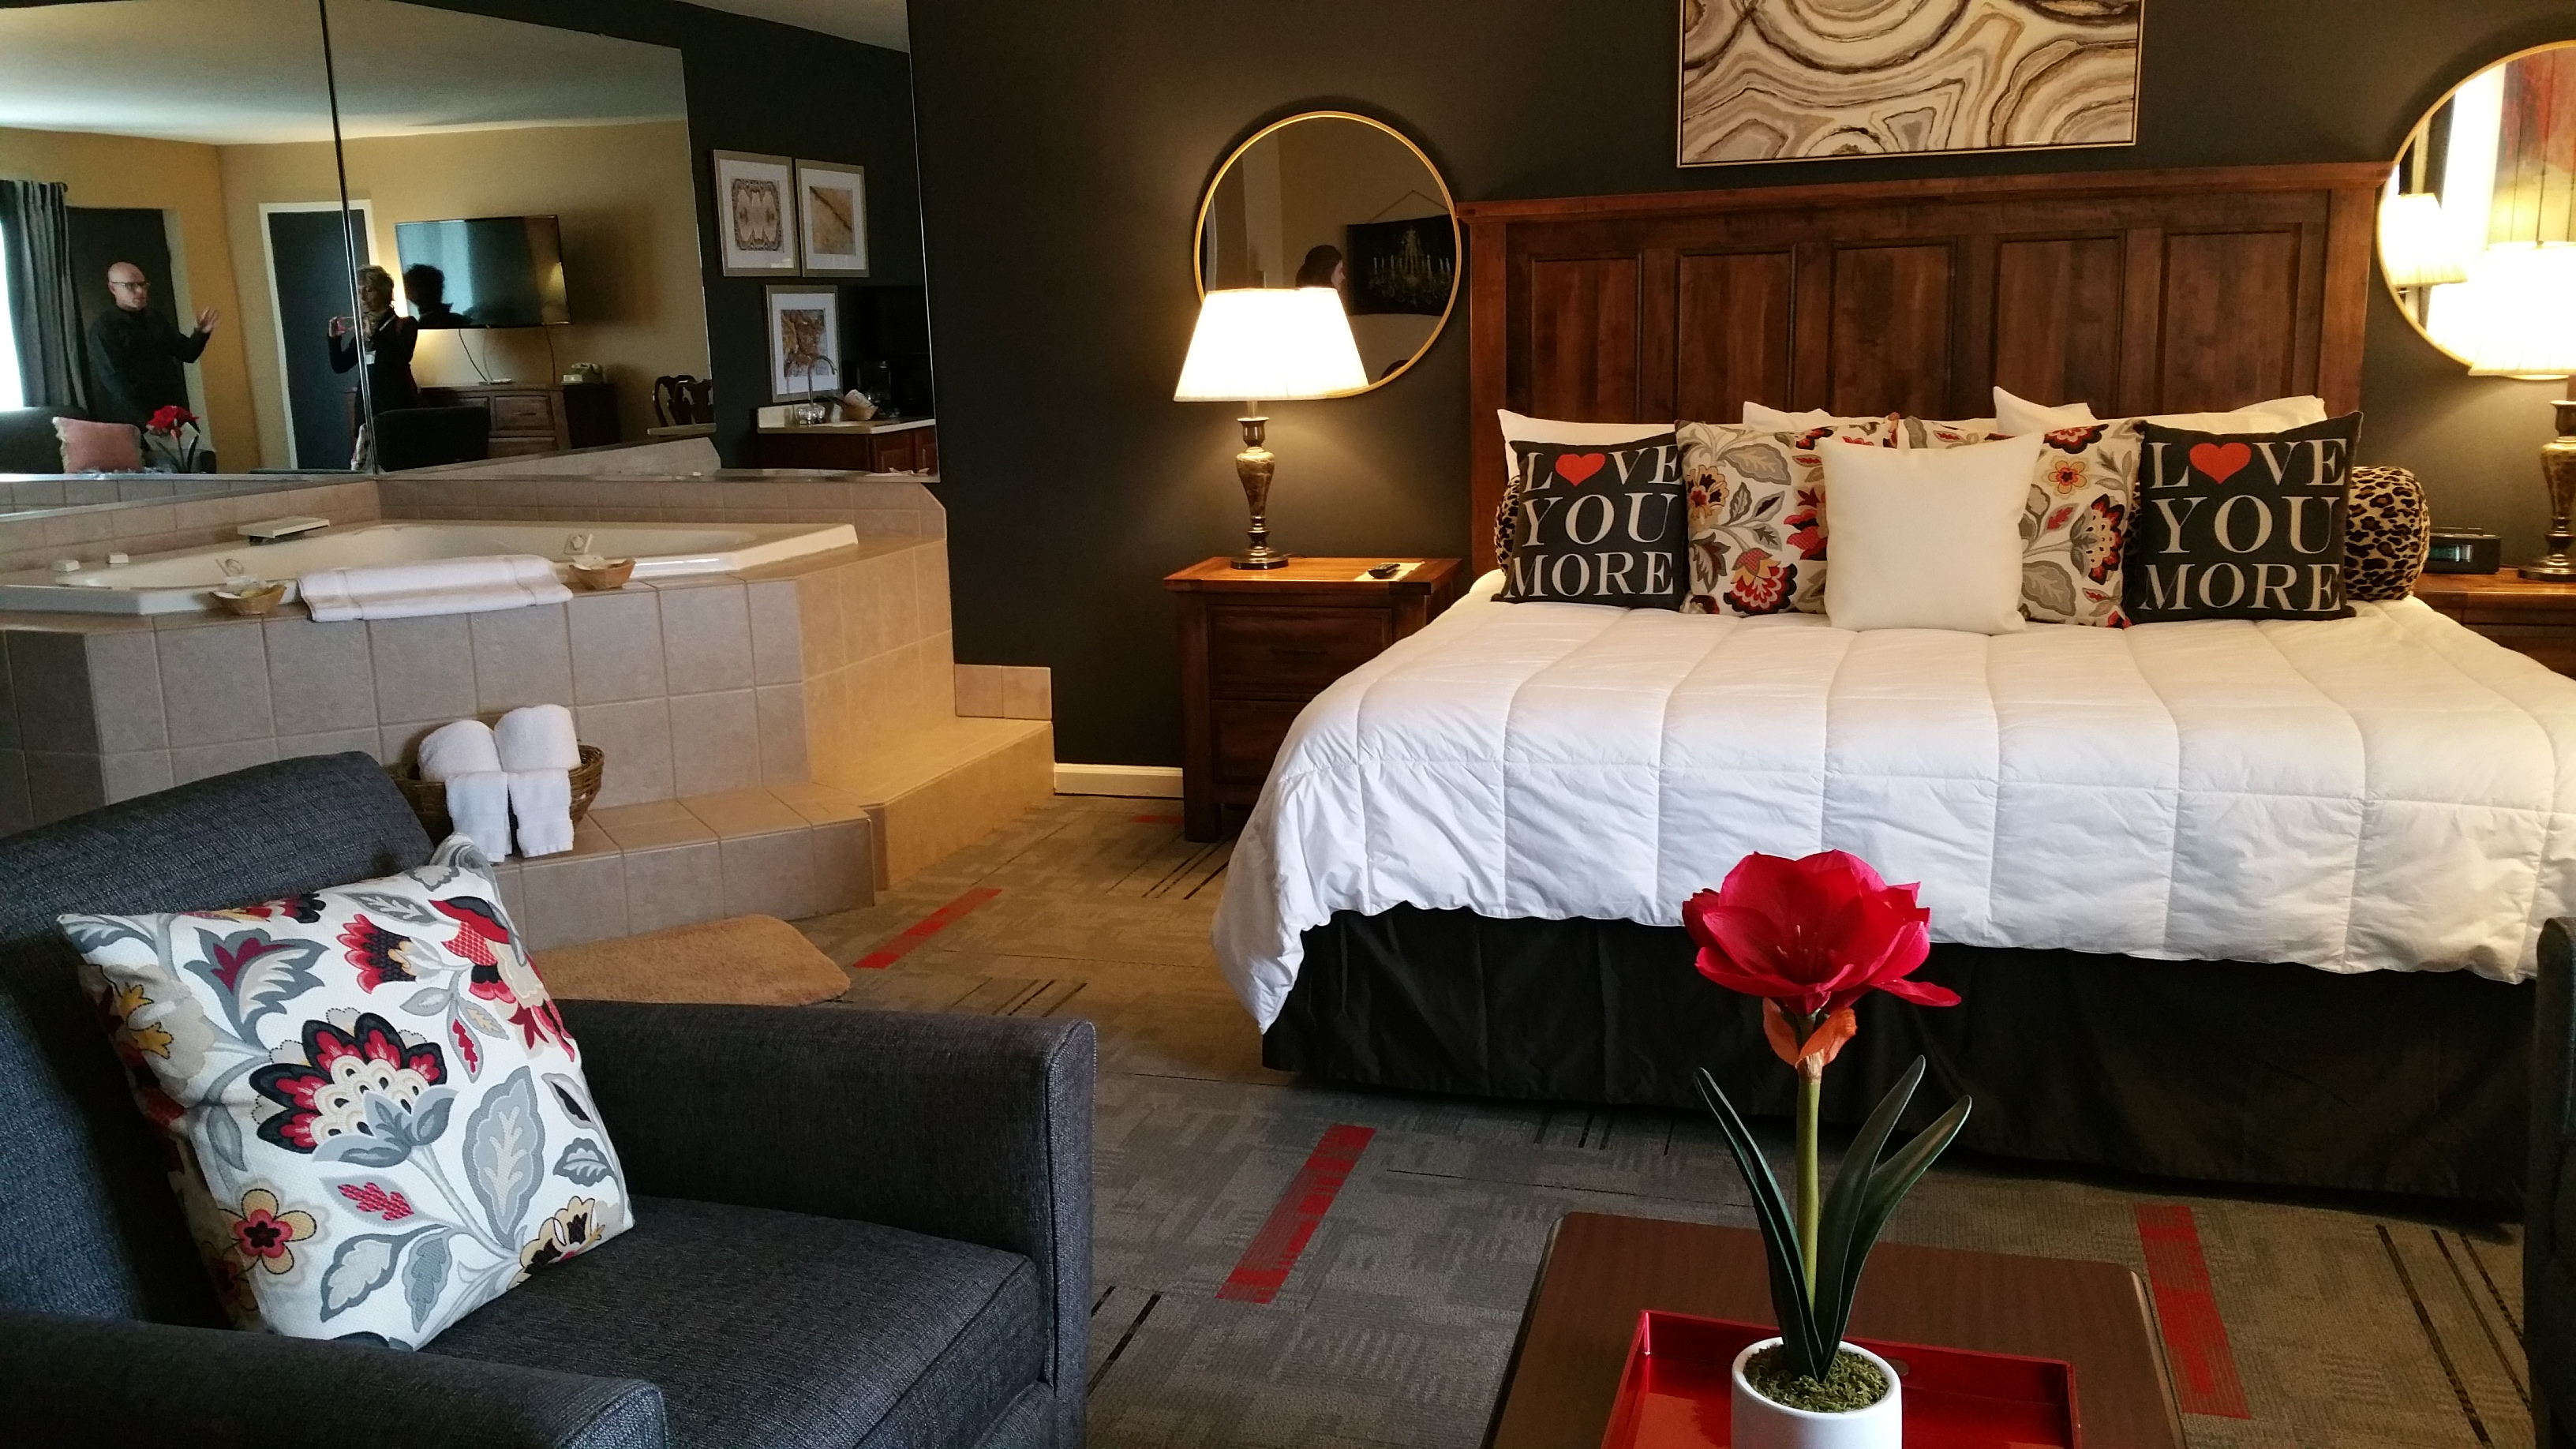 rooms and travel mspbr suites fairfield burnsville hor mn guestroom clsc minneapolis themed guest hotel inn room hotels